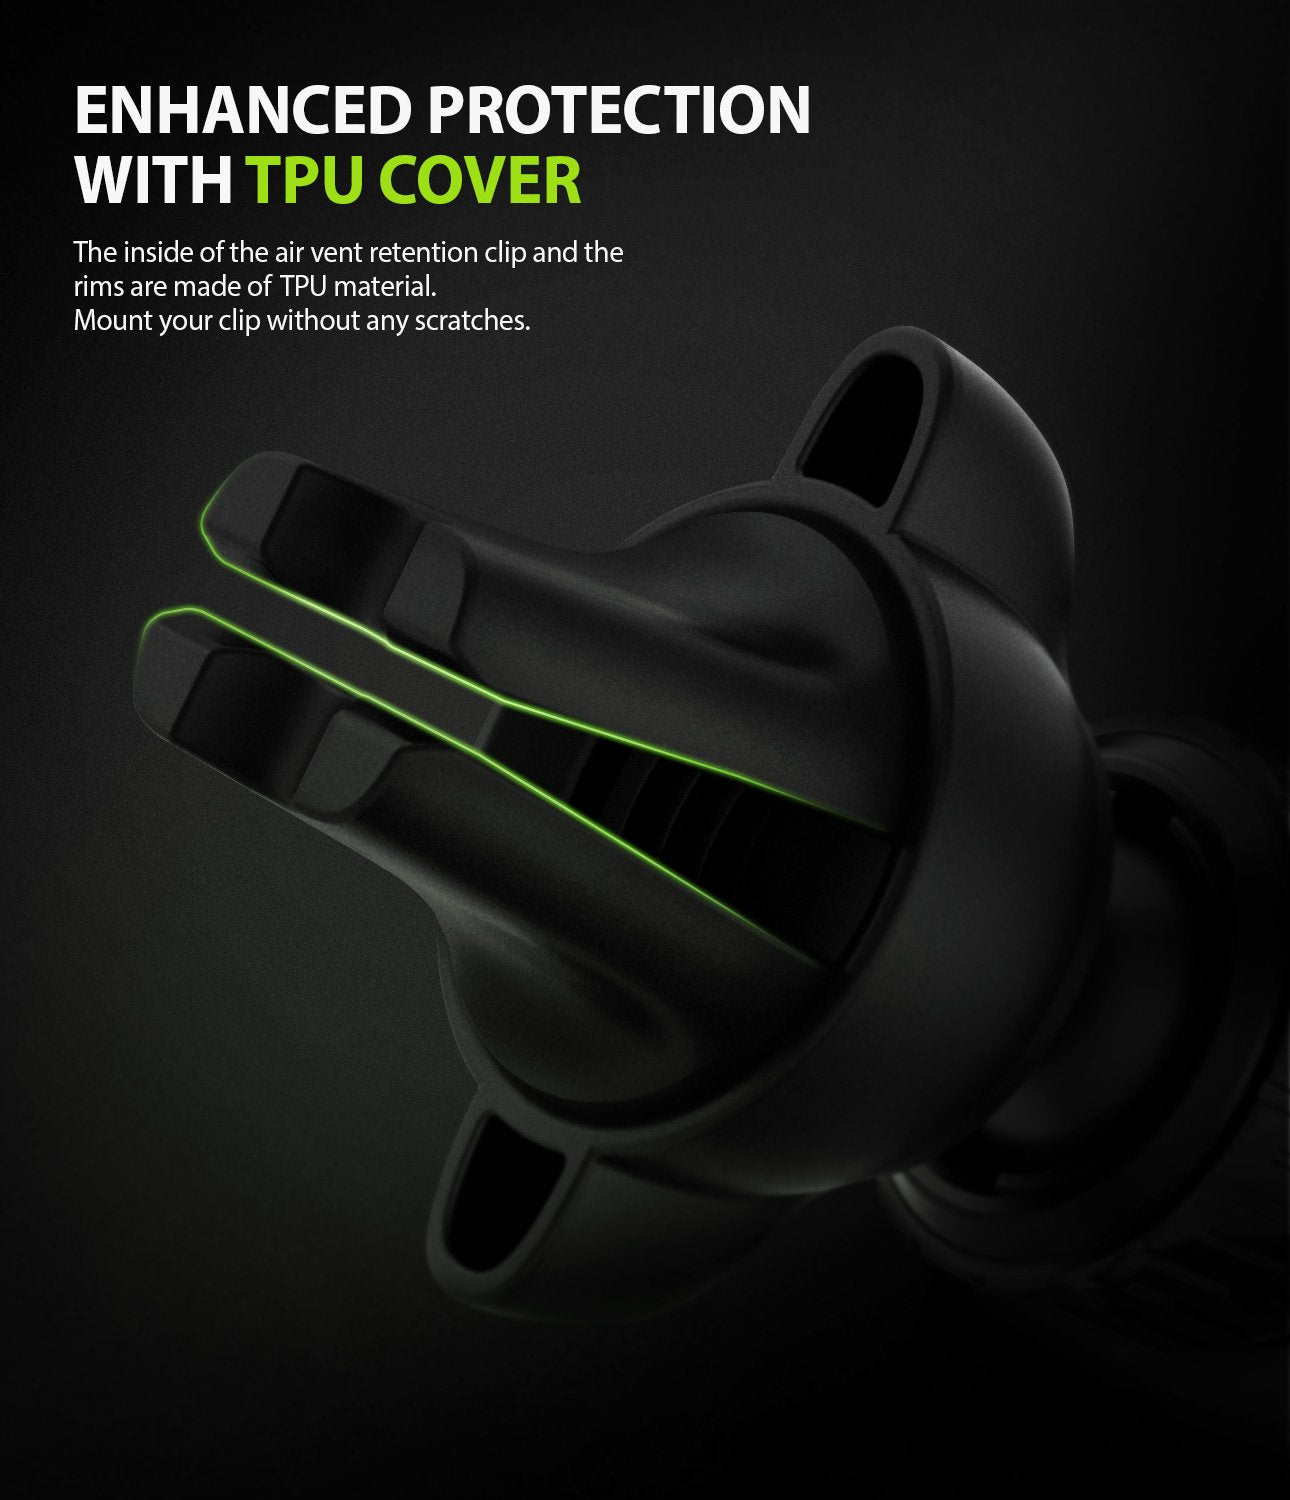 Ringke Power Clip Wing Car Mount enhanced protection with tpu cover to minimized the damage of the air vent